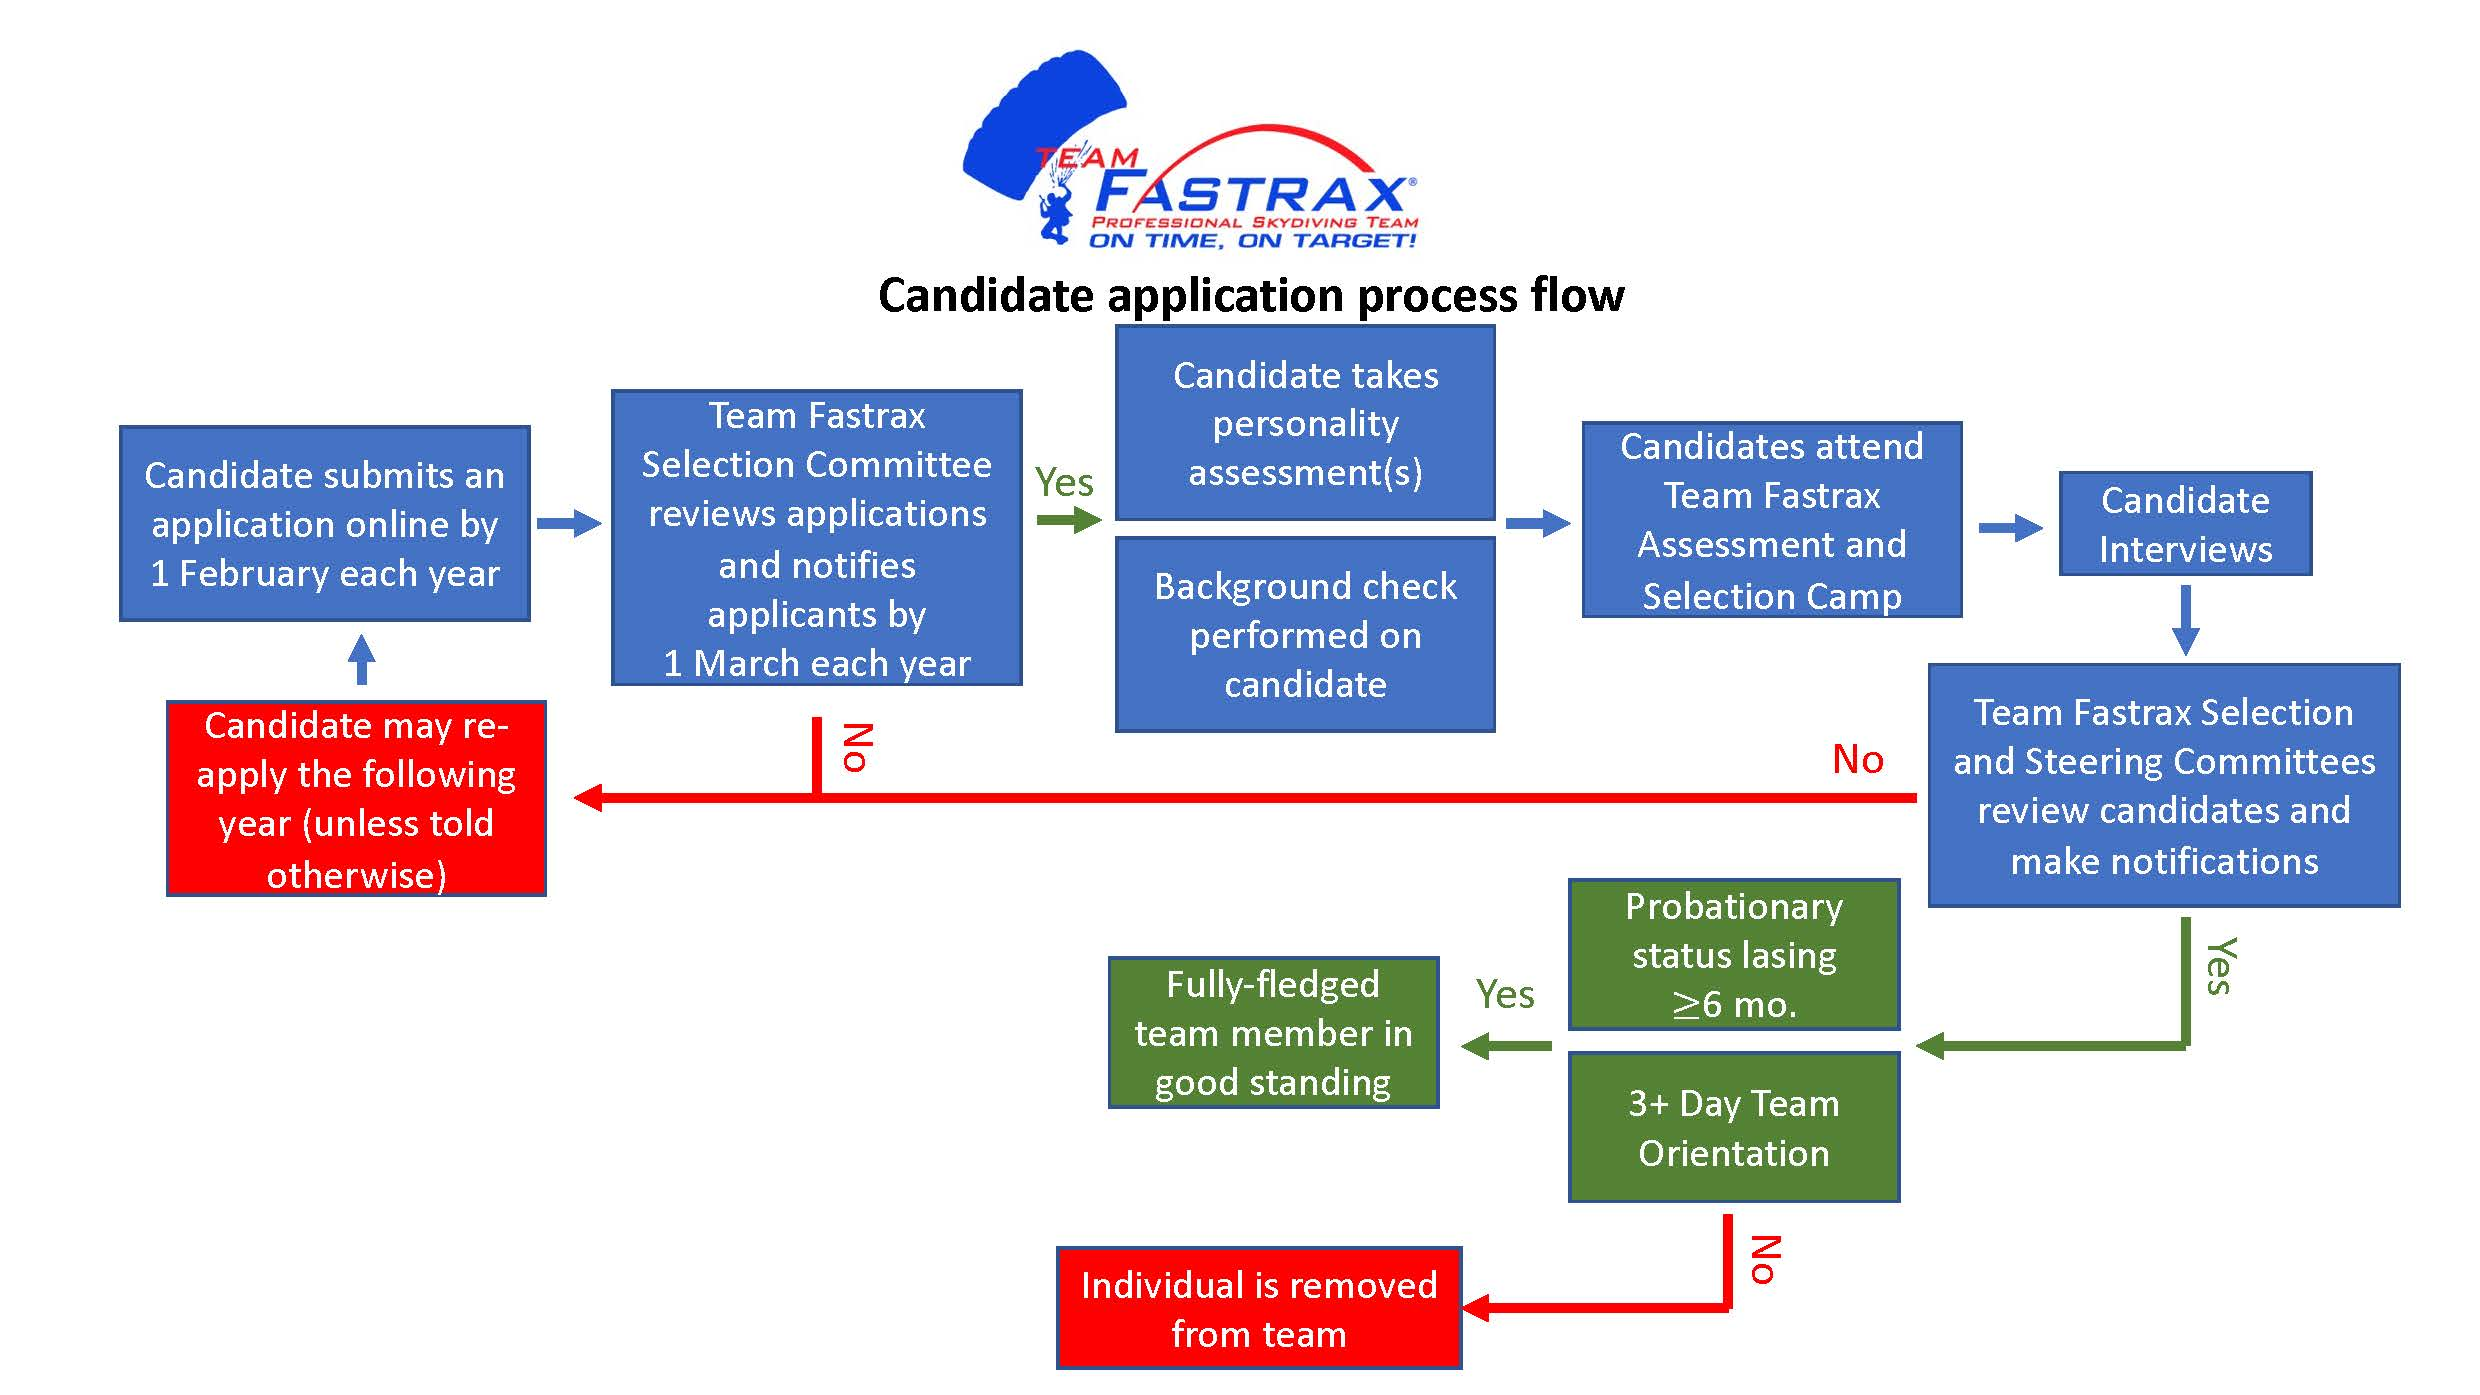 Candidate application process flow